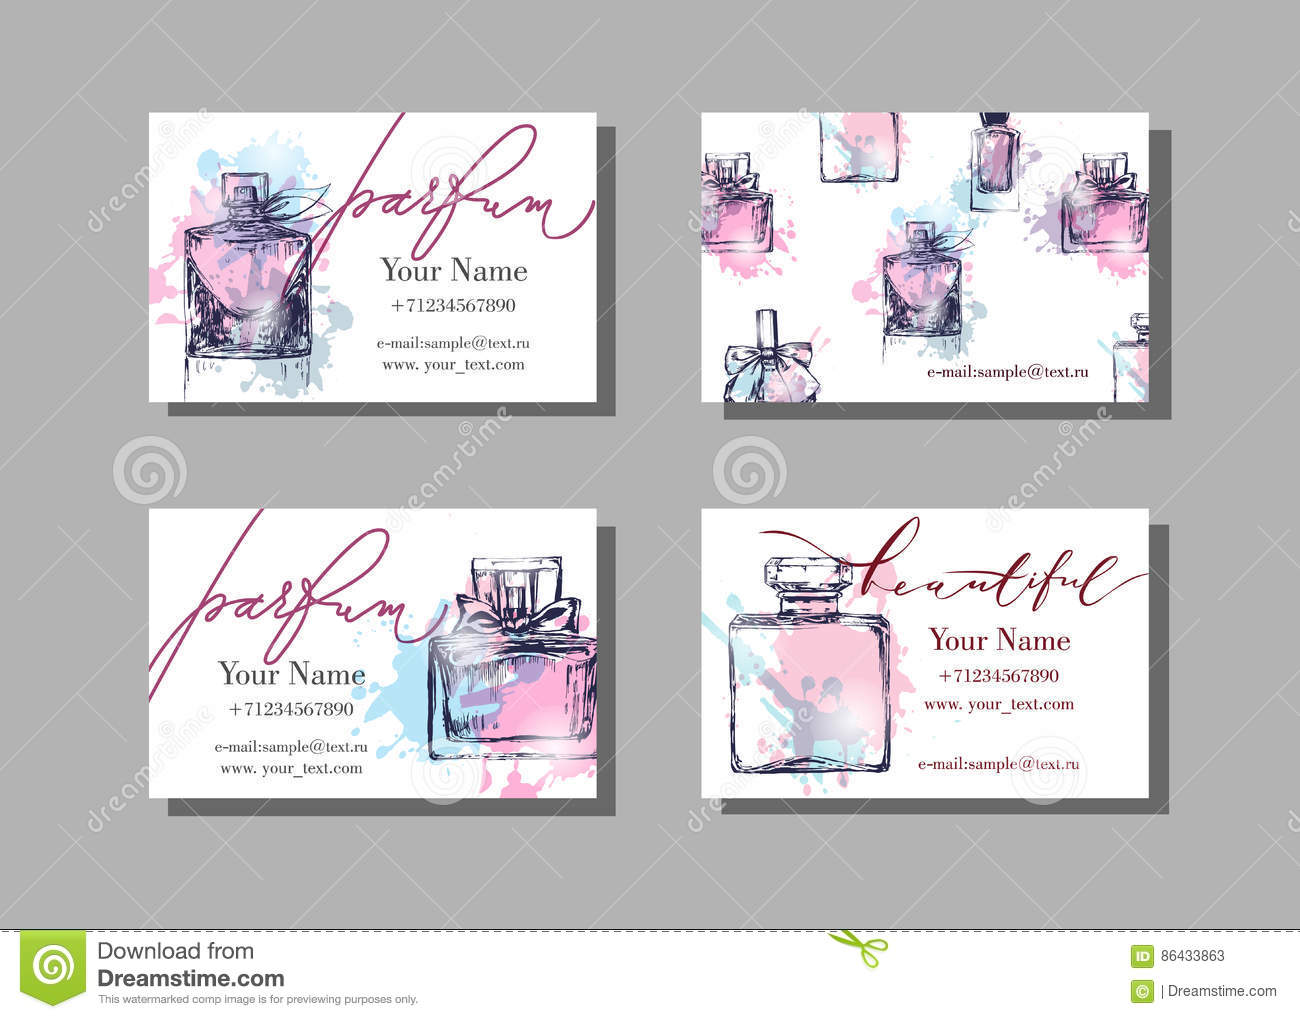 Makeup artist business card vector template with beautiful perfume makeup artist business card vector template with beautiful perfume bottle fashion and beauty background flashek Image collections